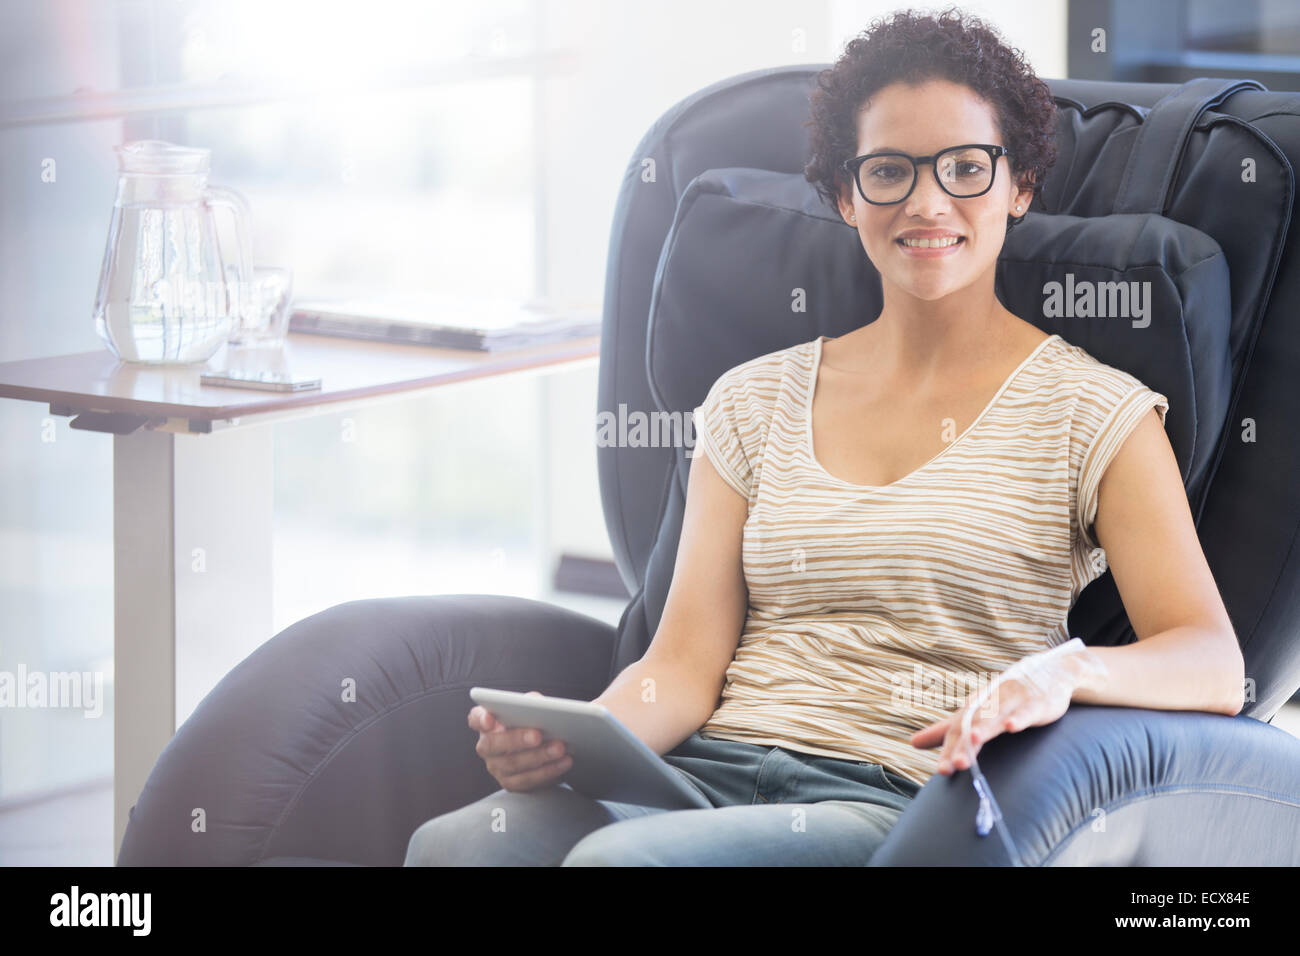 Smiling patient holding tablet pc, undergoing medical treatment in outpatient clinic - Stock Image